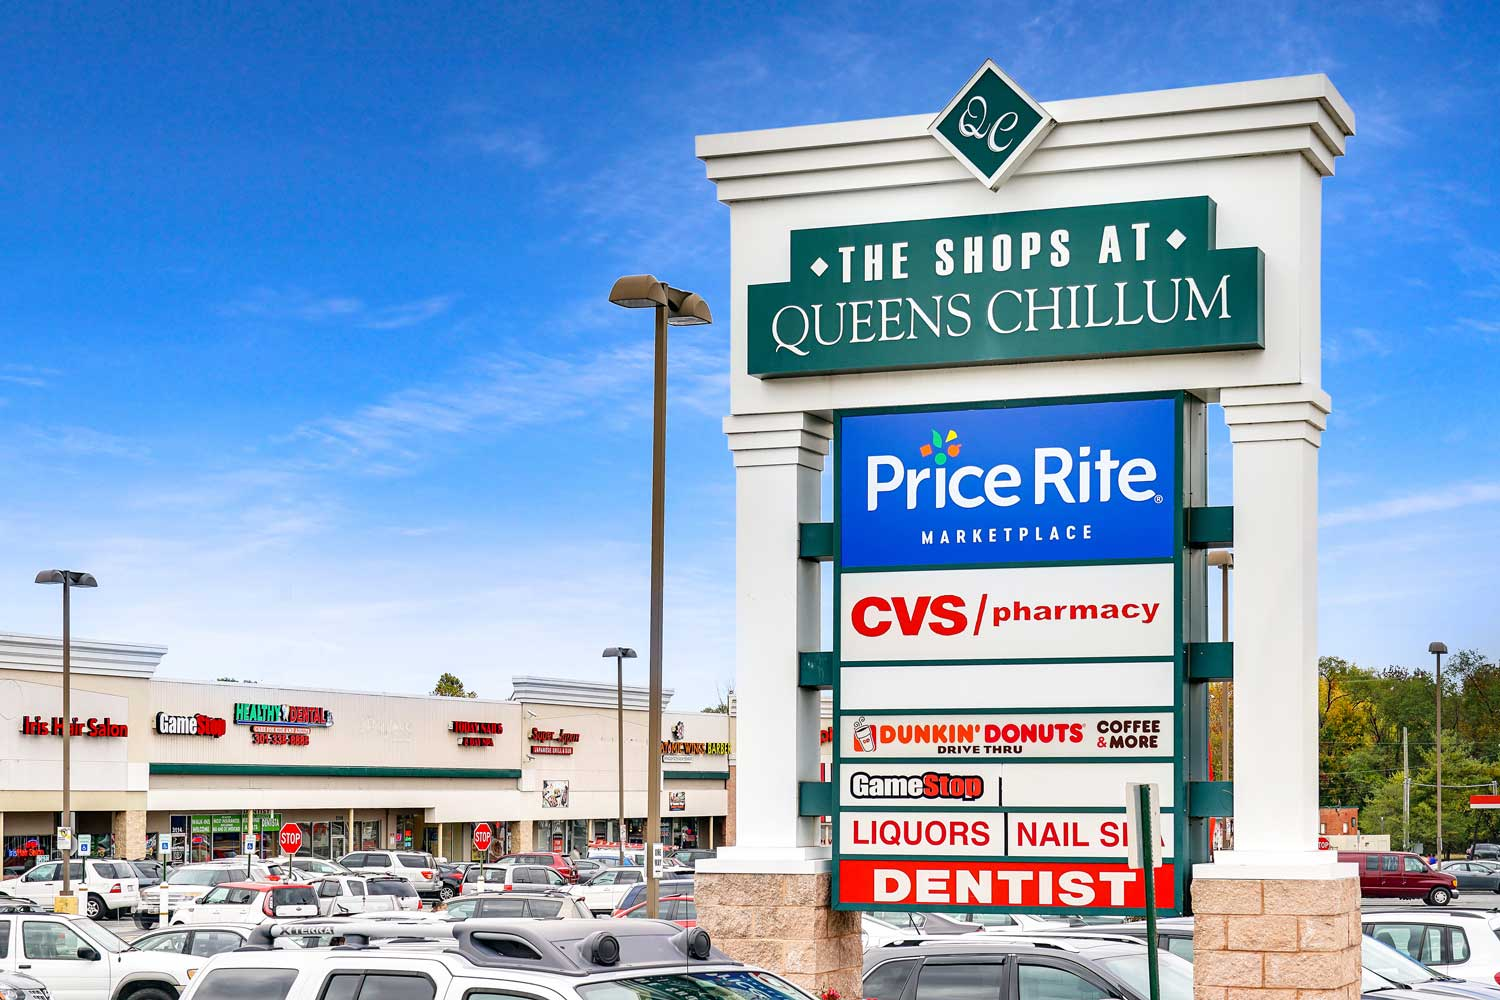 The Shops at Queens Chillum 5 minutes from Kirkwood Apartments in Hyattsville, MD